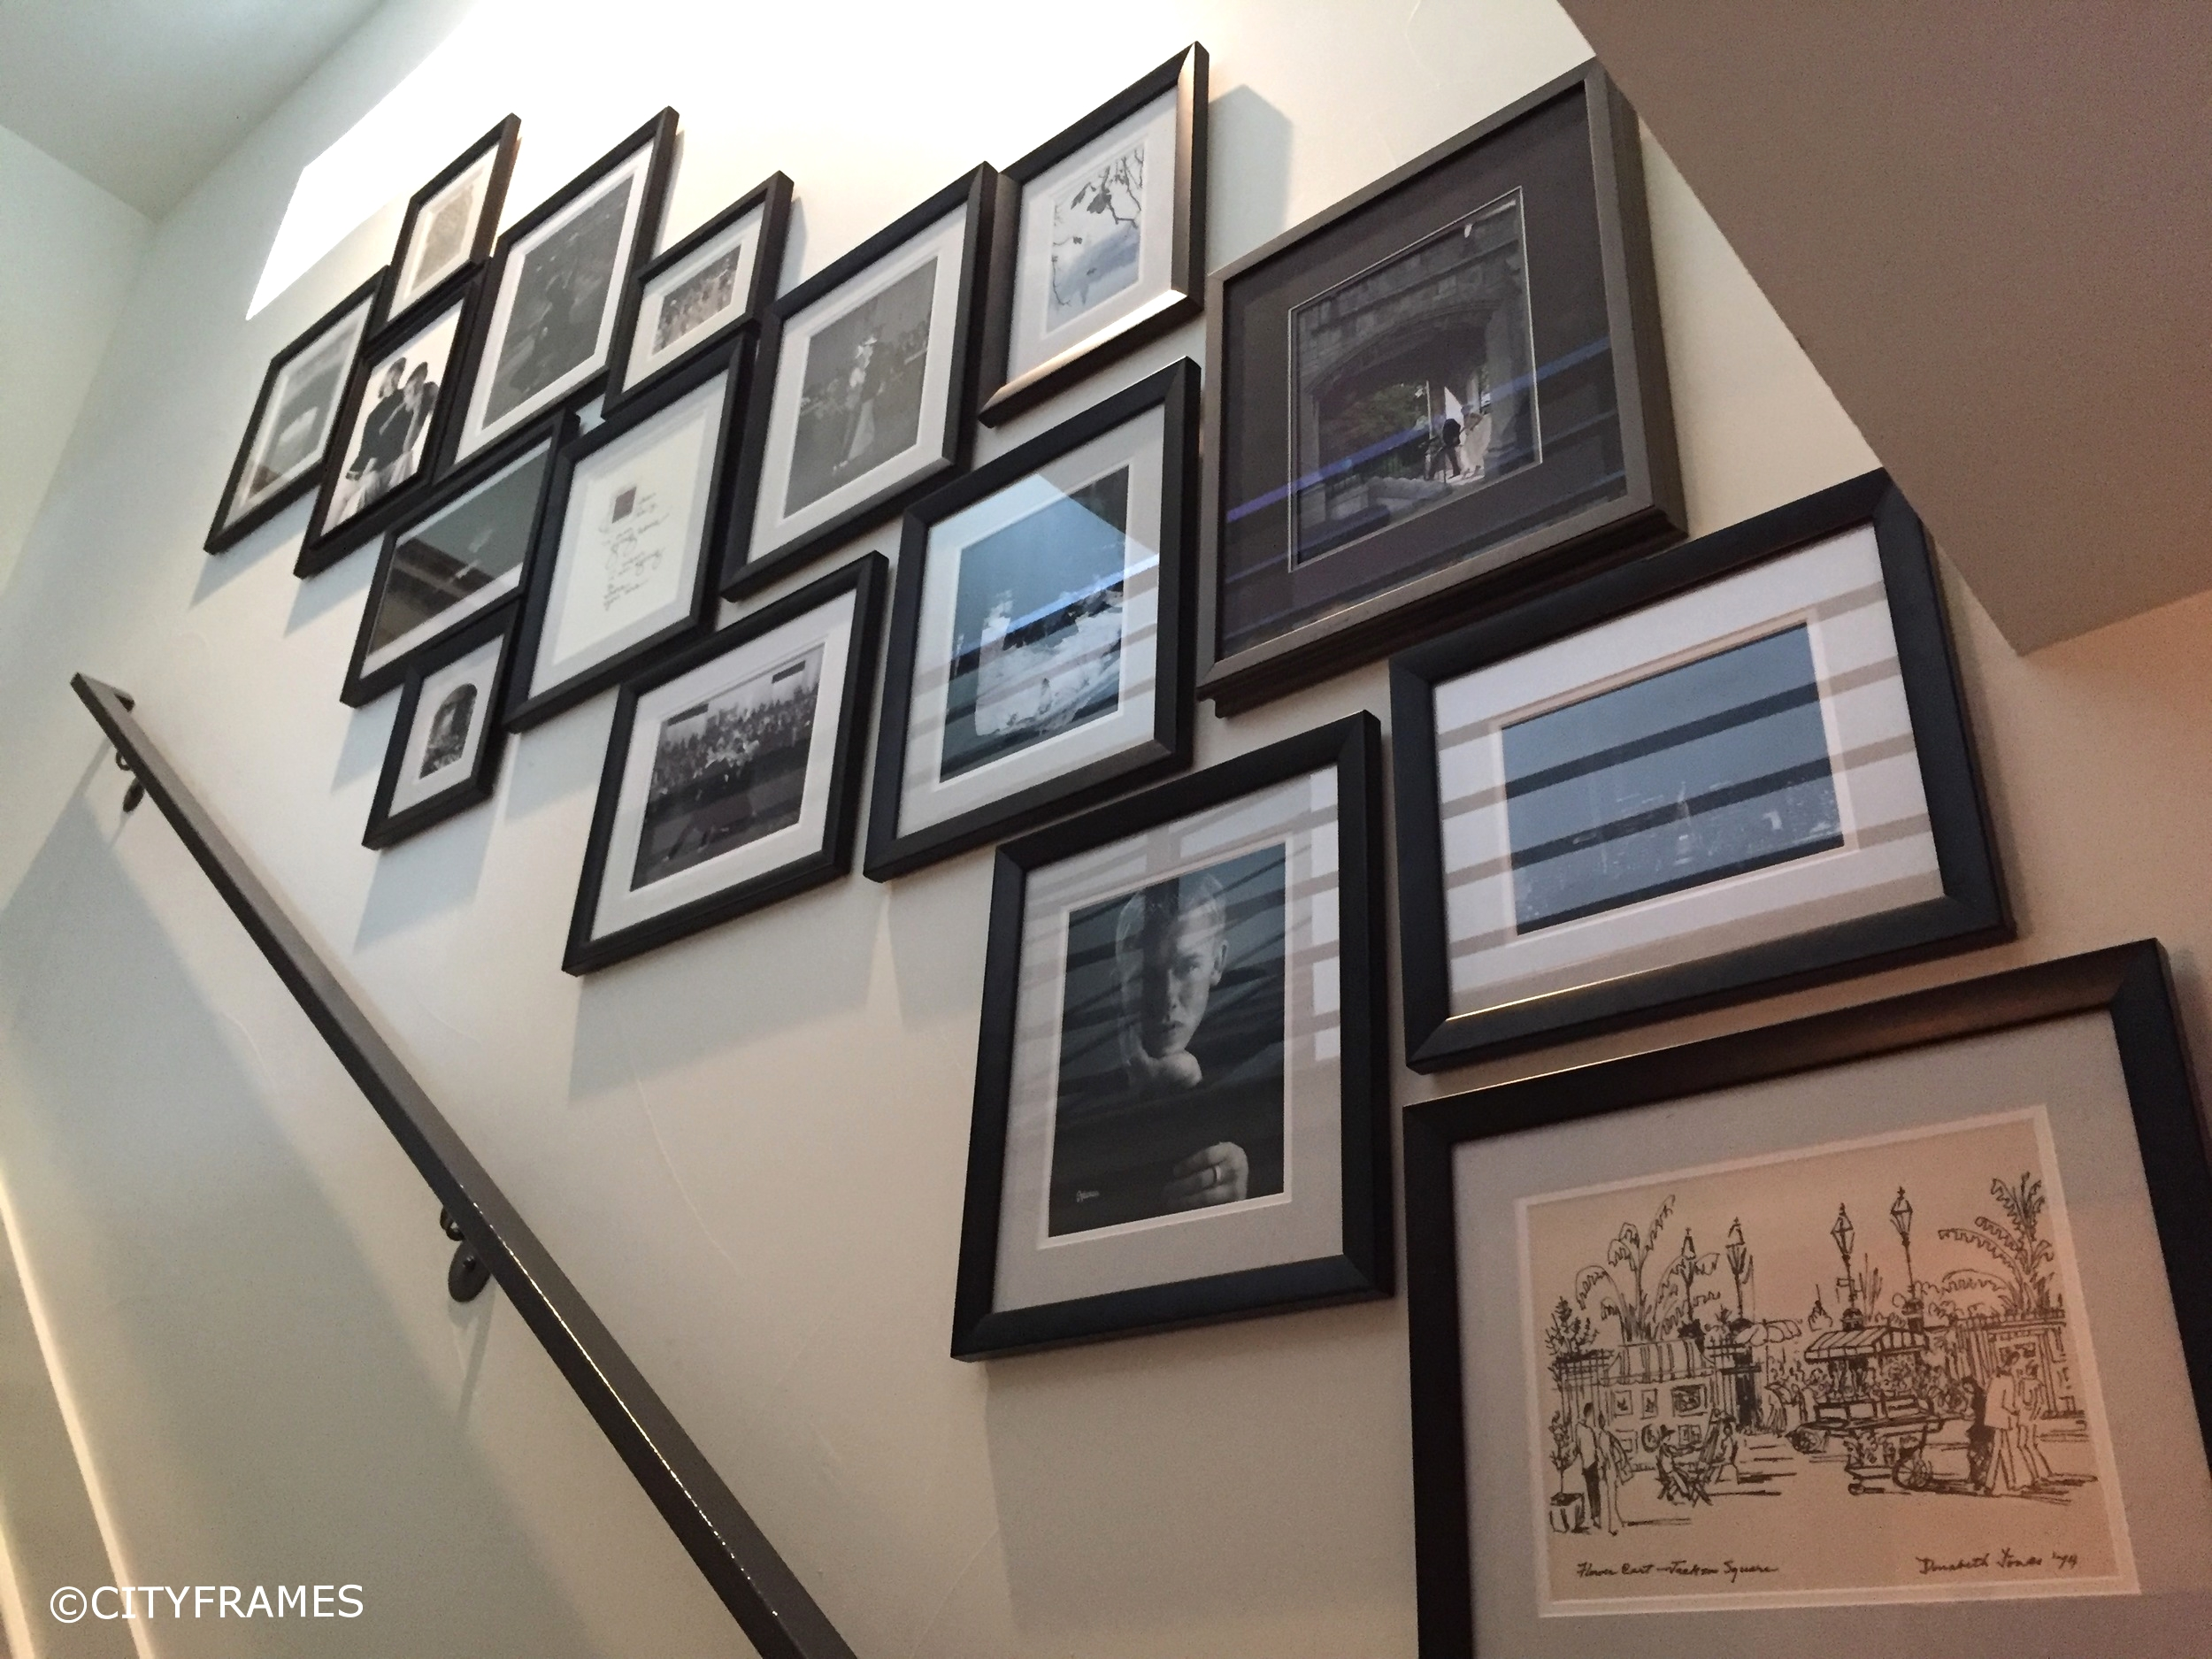 Photographs with similar frames create playful compositions, as seen in the stairway above.  Project: private residence. Staff designer: Summer Sleight.